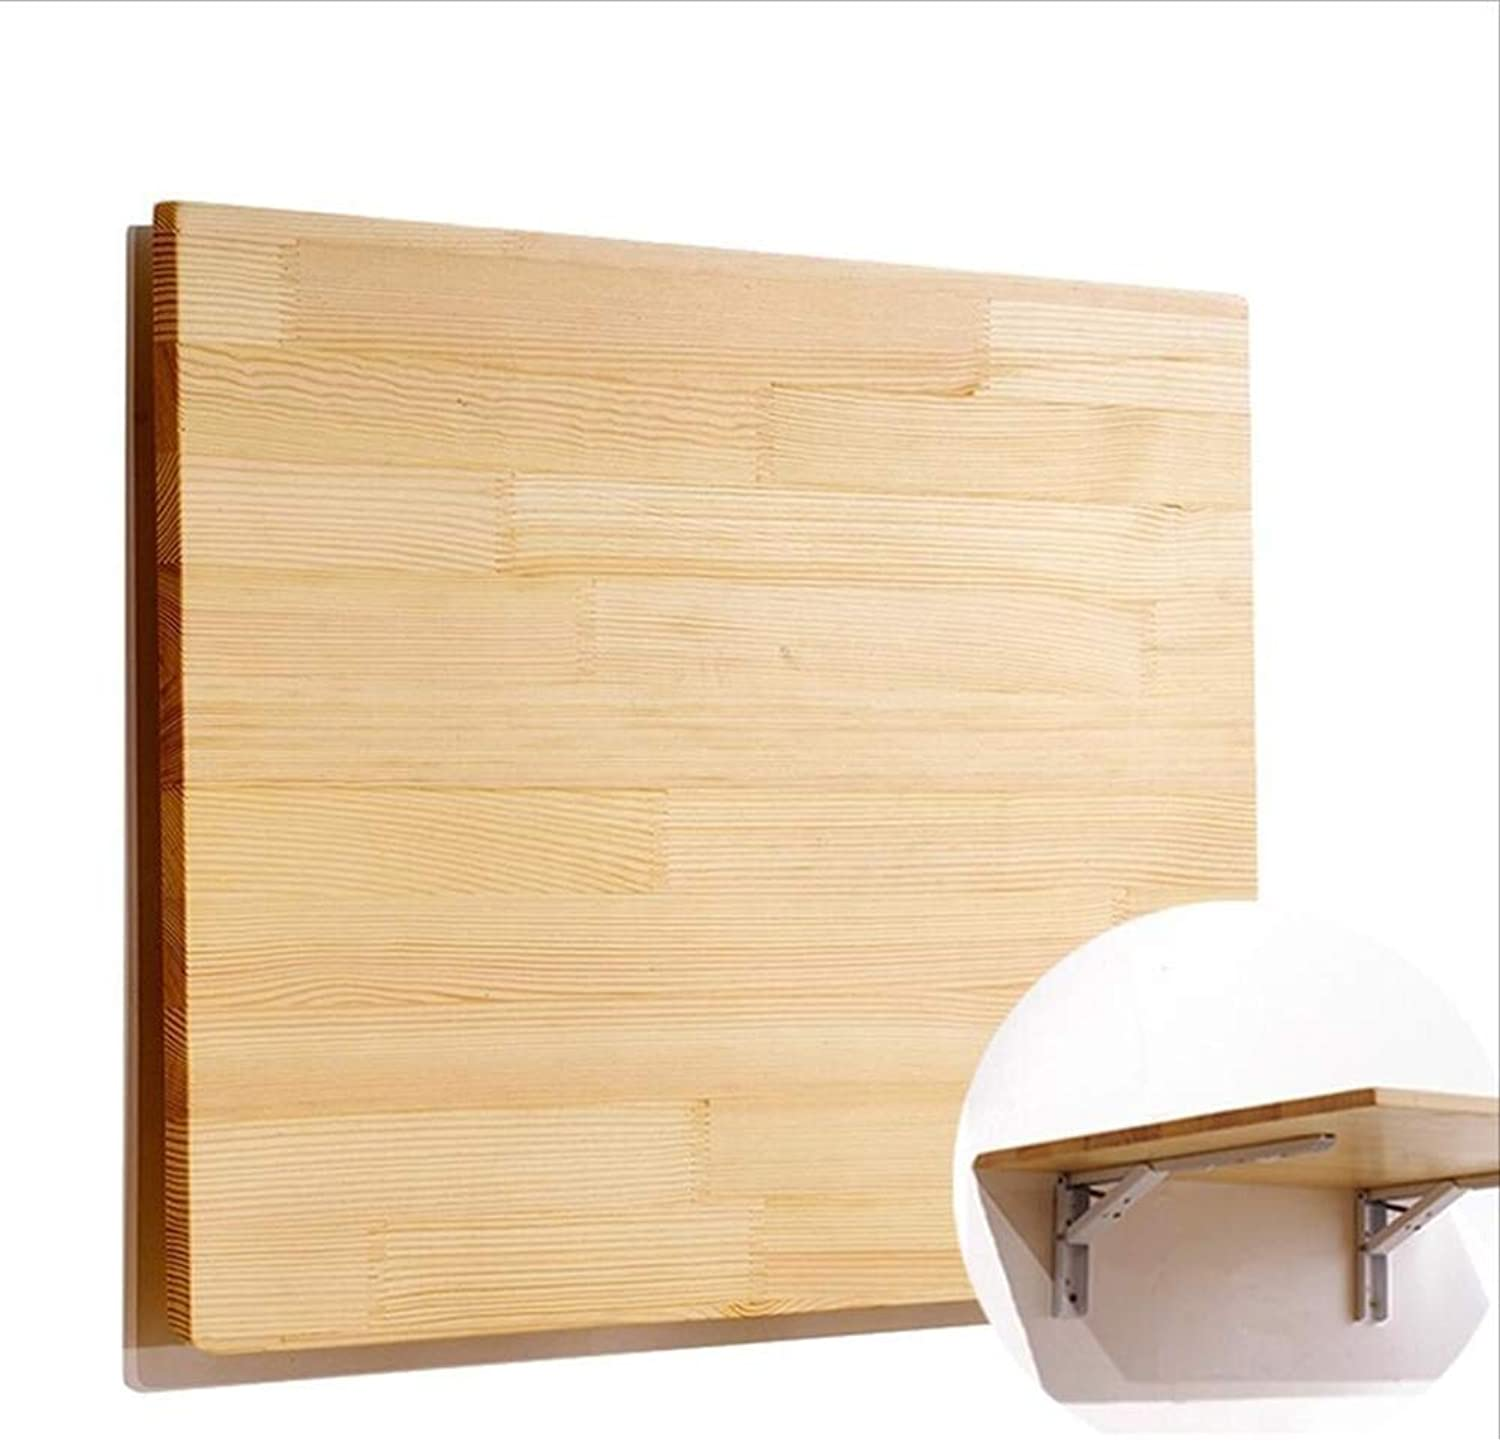 LIANGLIANG Wall-Mounted Table Desk Wall-Mounted Drop-Leaf Folding Table Creative Against The Wall Suspension Storage Multi-Function Dining Table Bar Counter Pine, 21 Sizes